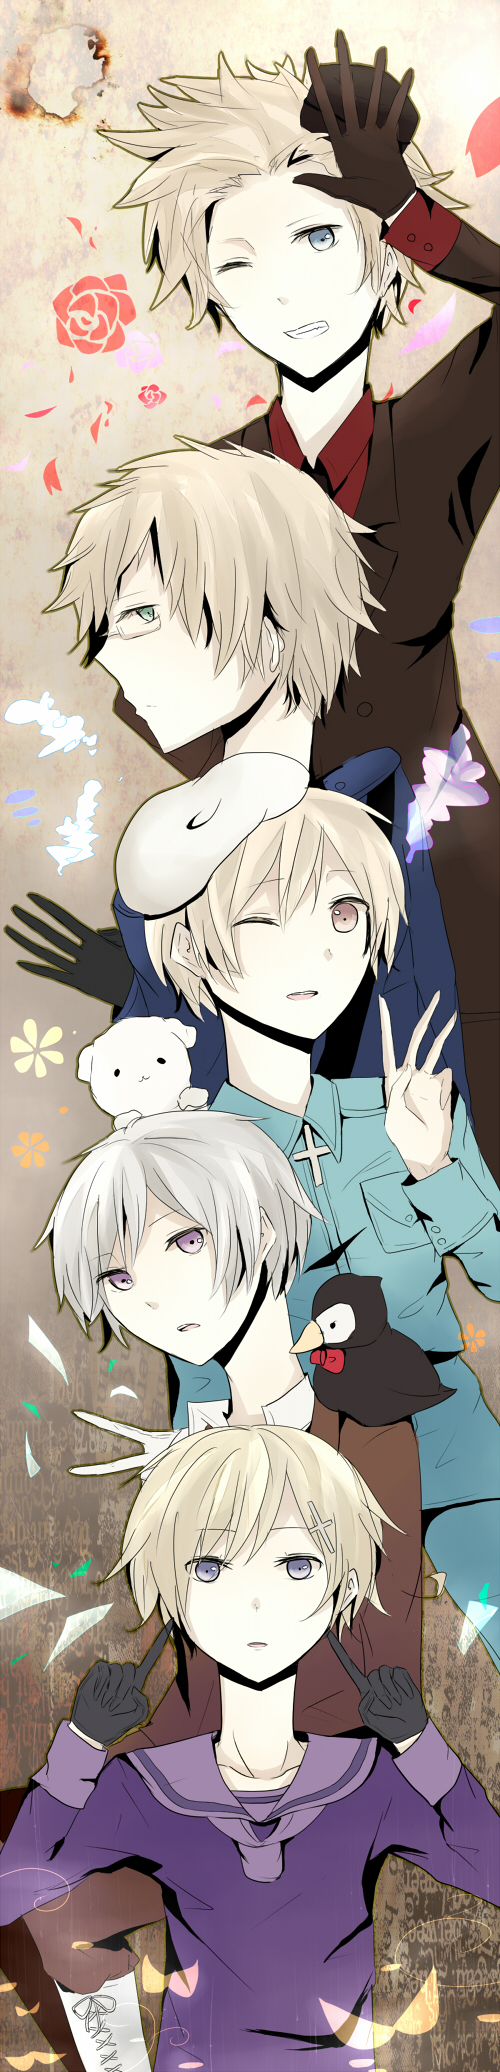 Tags: Anime, Axis Powers: Hetalia, Finland, Sweden, Iceland, Denmark, Norway, Pixiv, Fanart, Nordic Countries